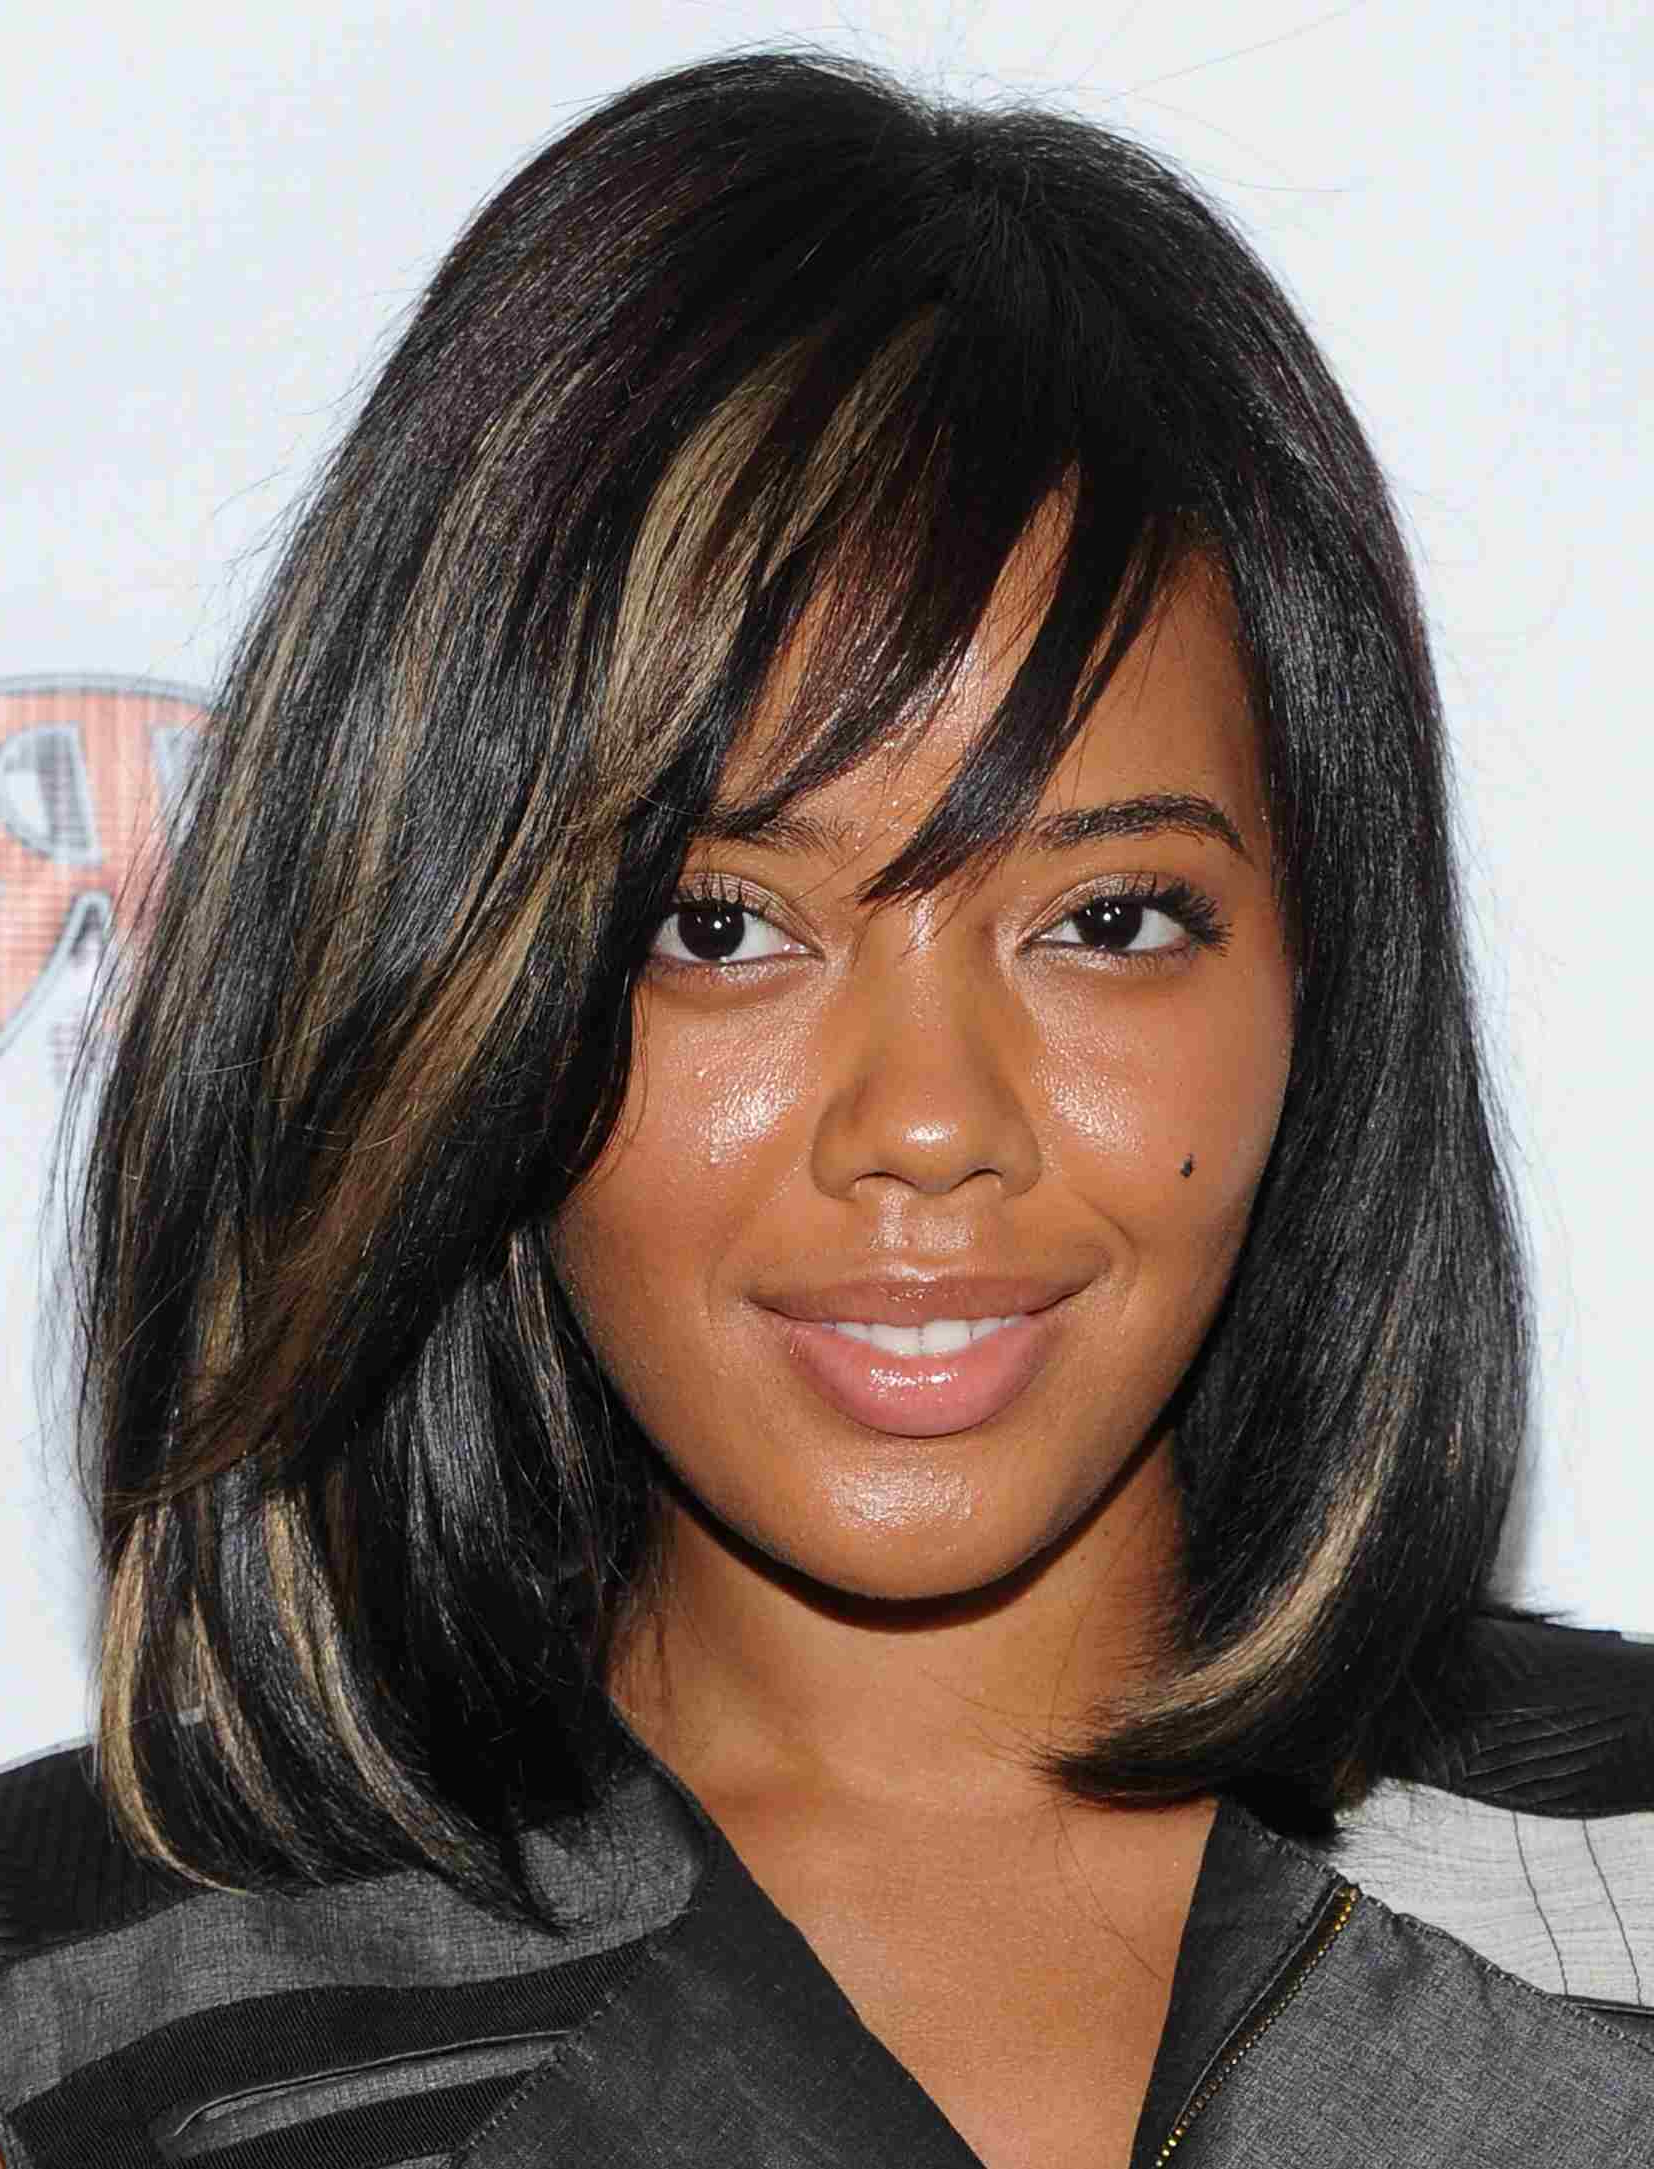 20 Photos Of Hairstyles With Gorgeous Side Swept Bangs For Side Swept Short Hairstyles (View 8 of 25)